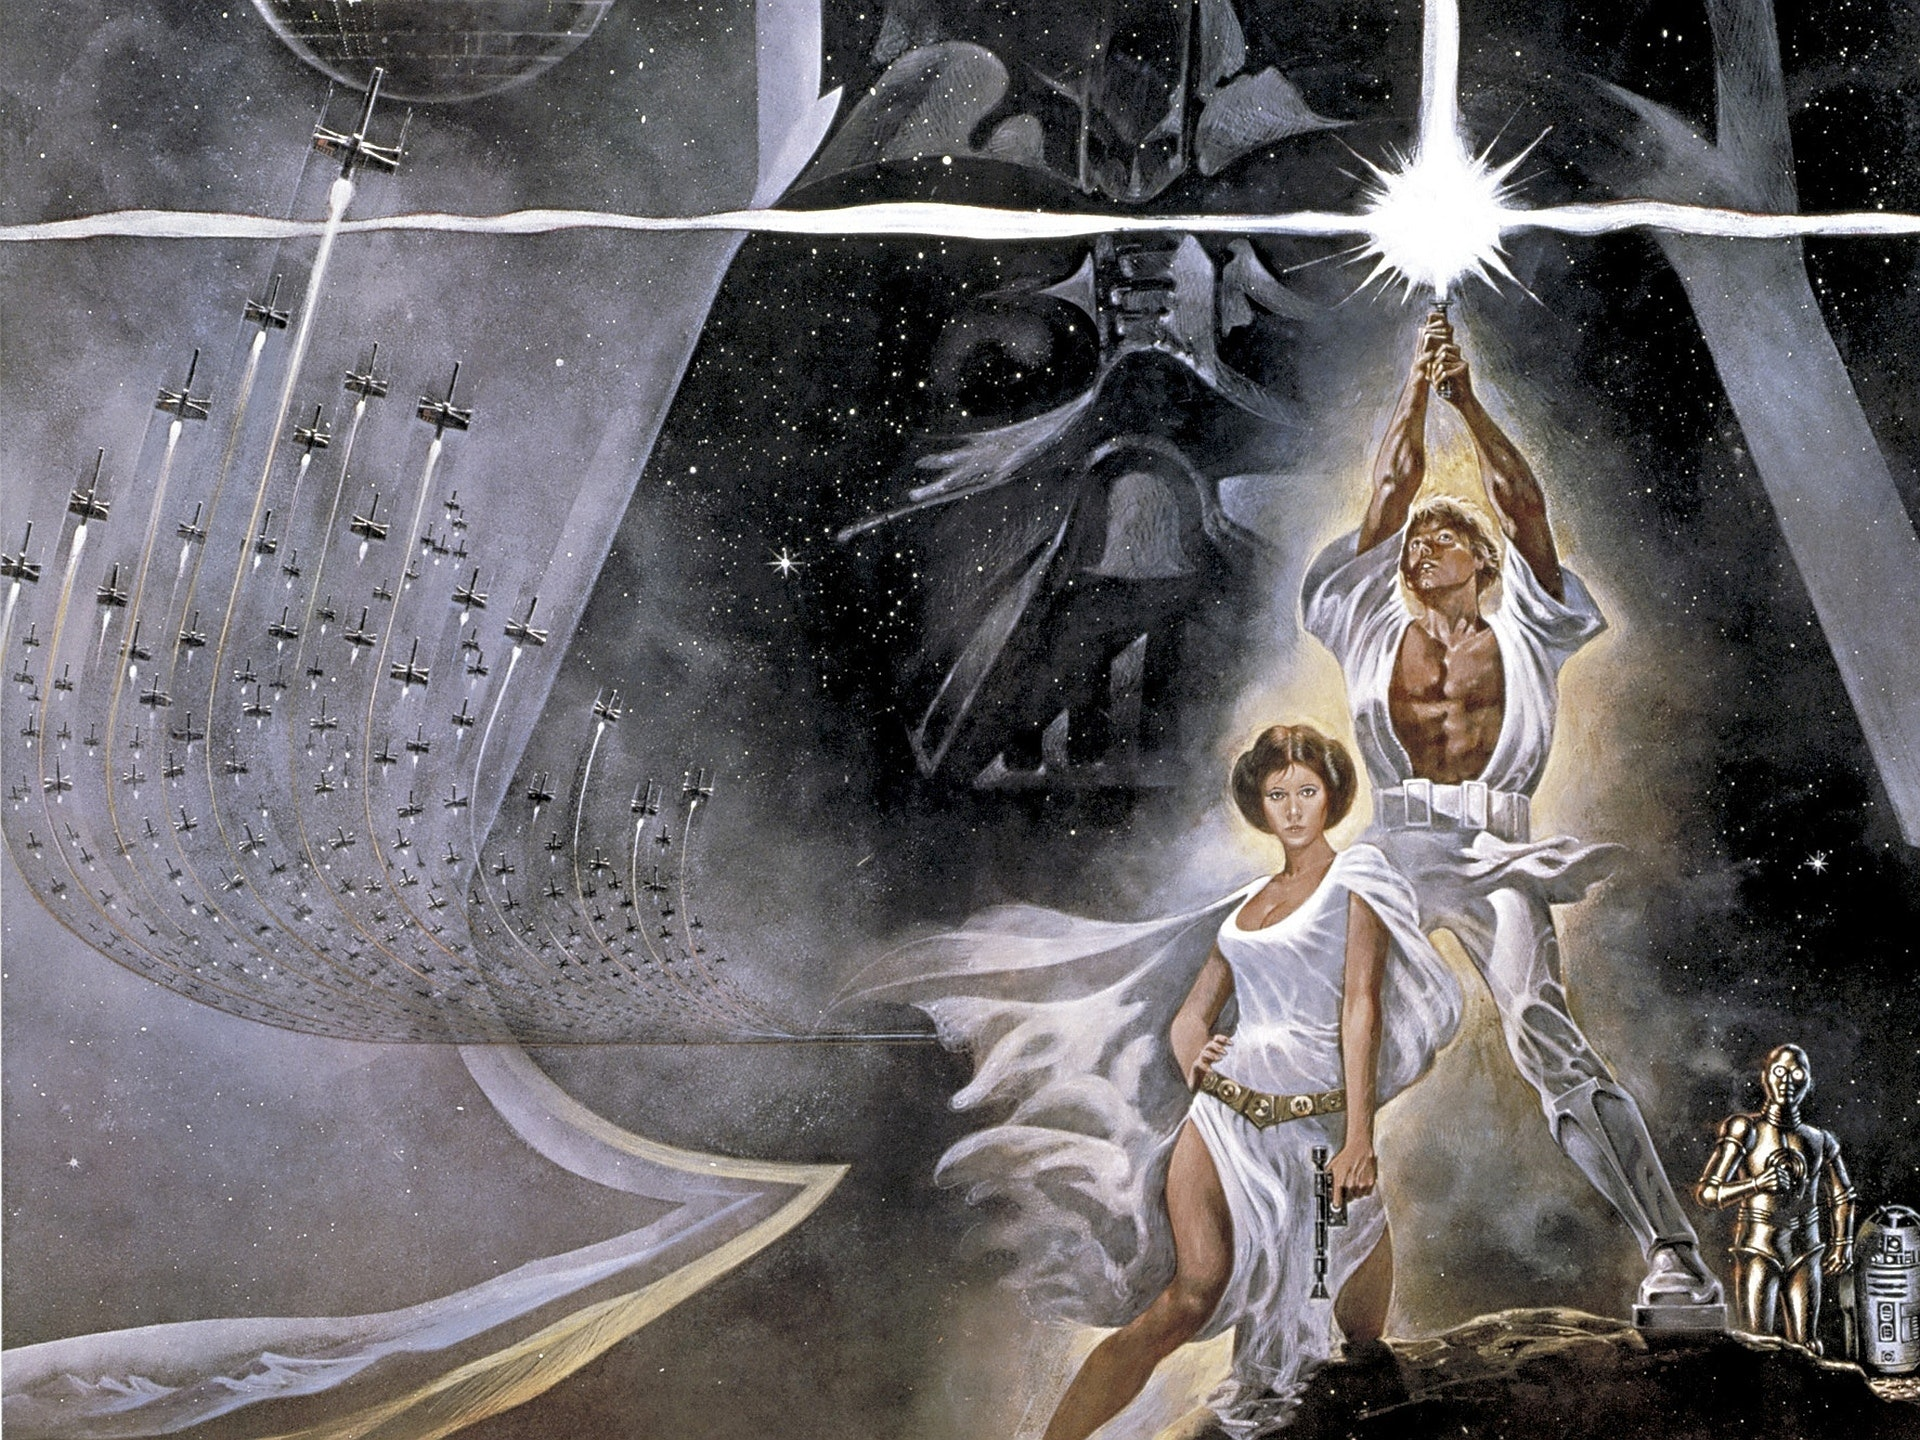 4k Restoration Of Original Star Wars Could Return To Theaters In 2017